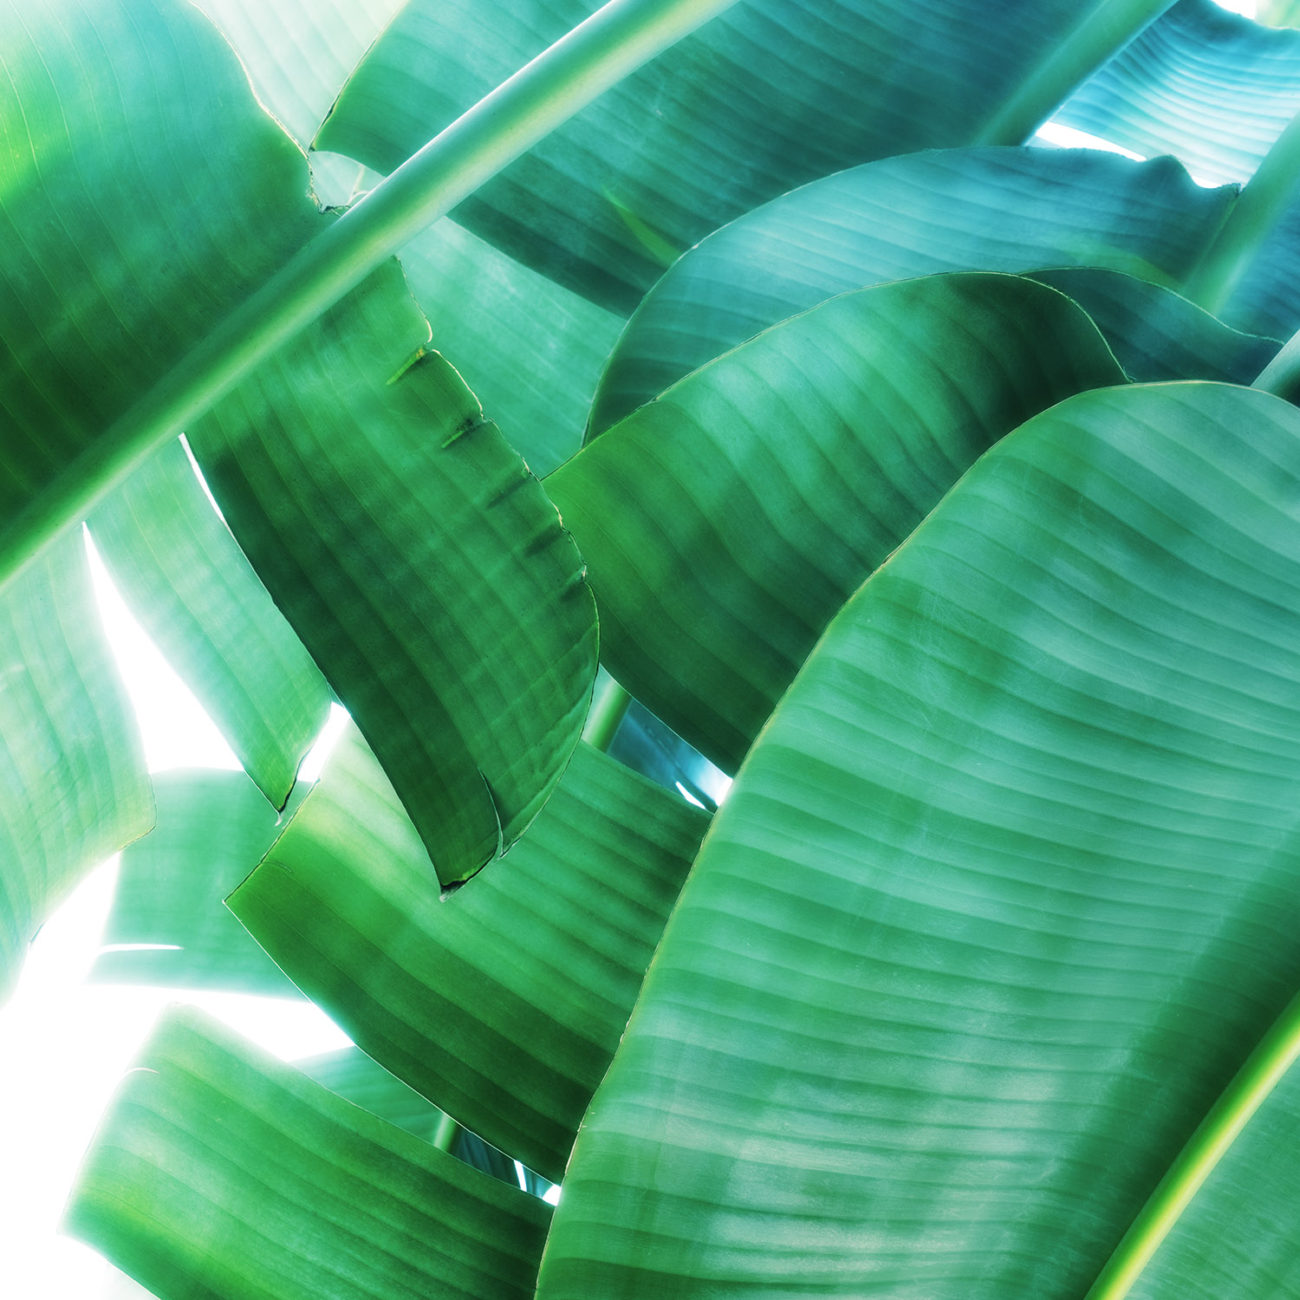 Group of banana leaves, Boca Raton, 2017